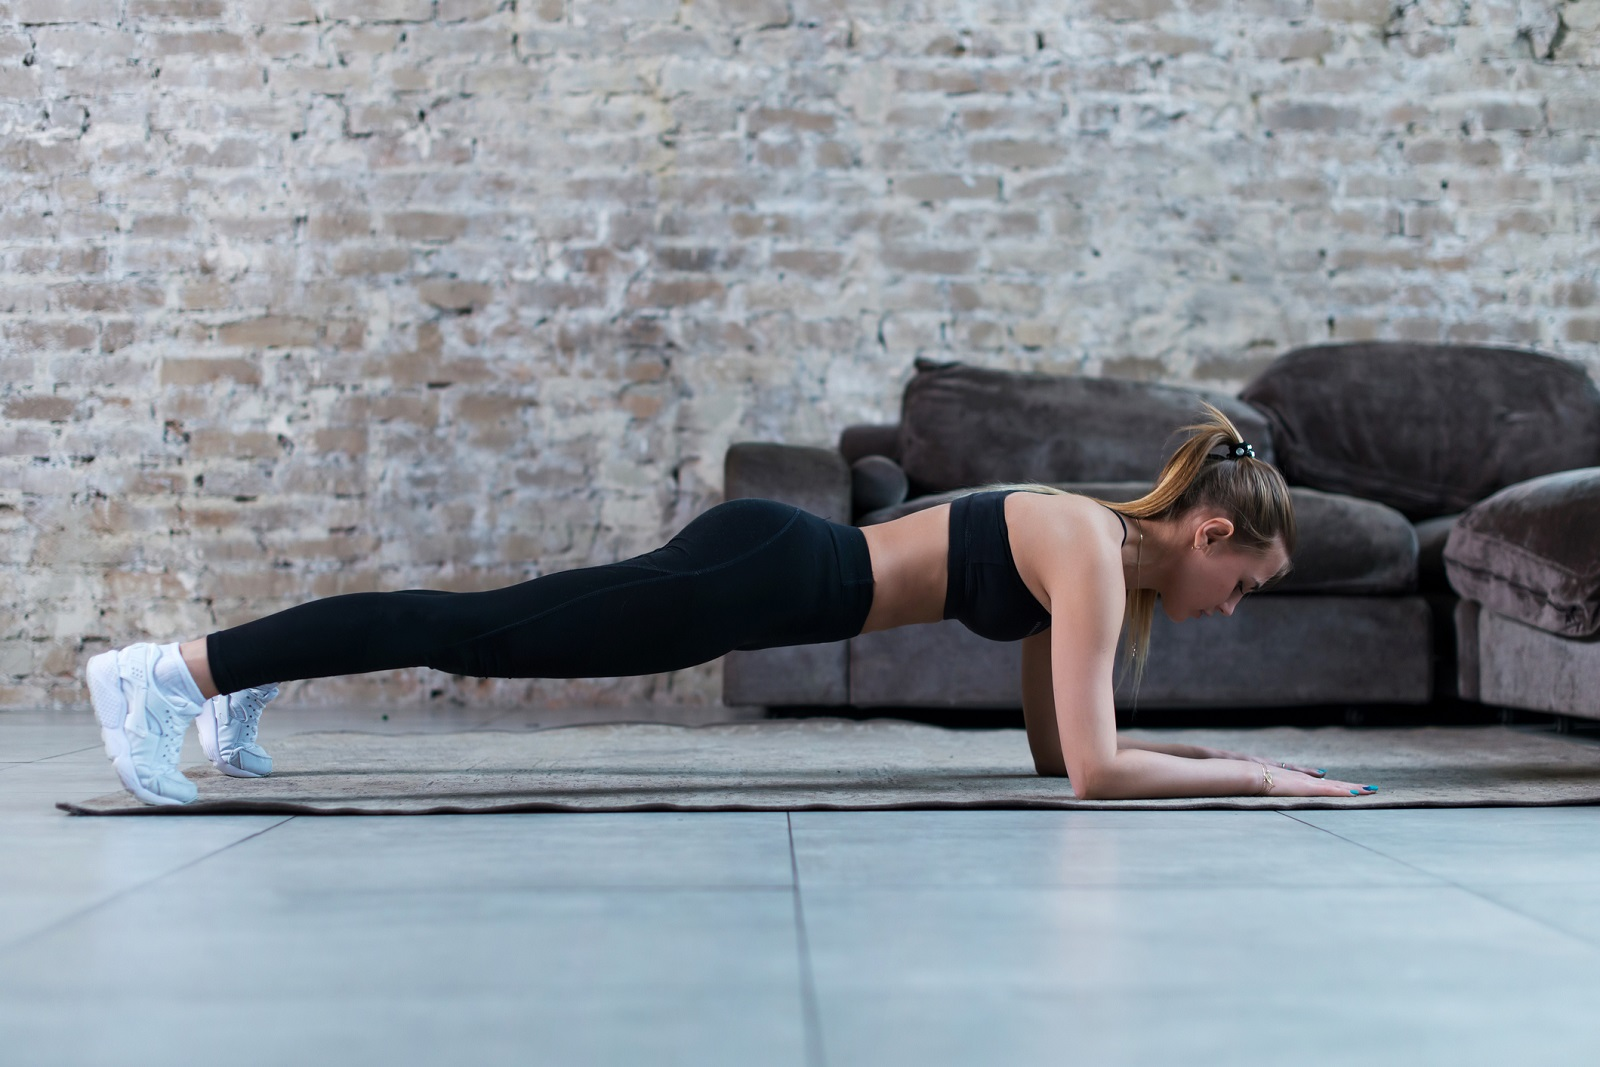 Slim young brunette wearing black gym clothing doing abdominal bridge or front plank exercise in loft apartment